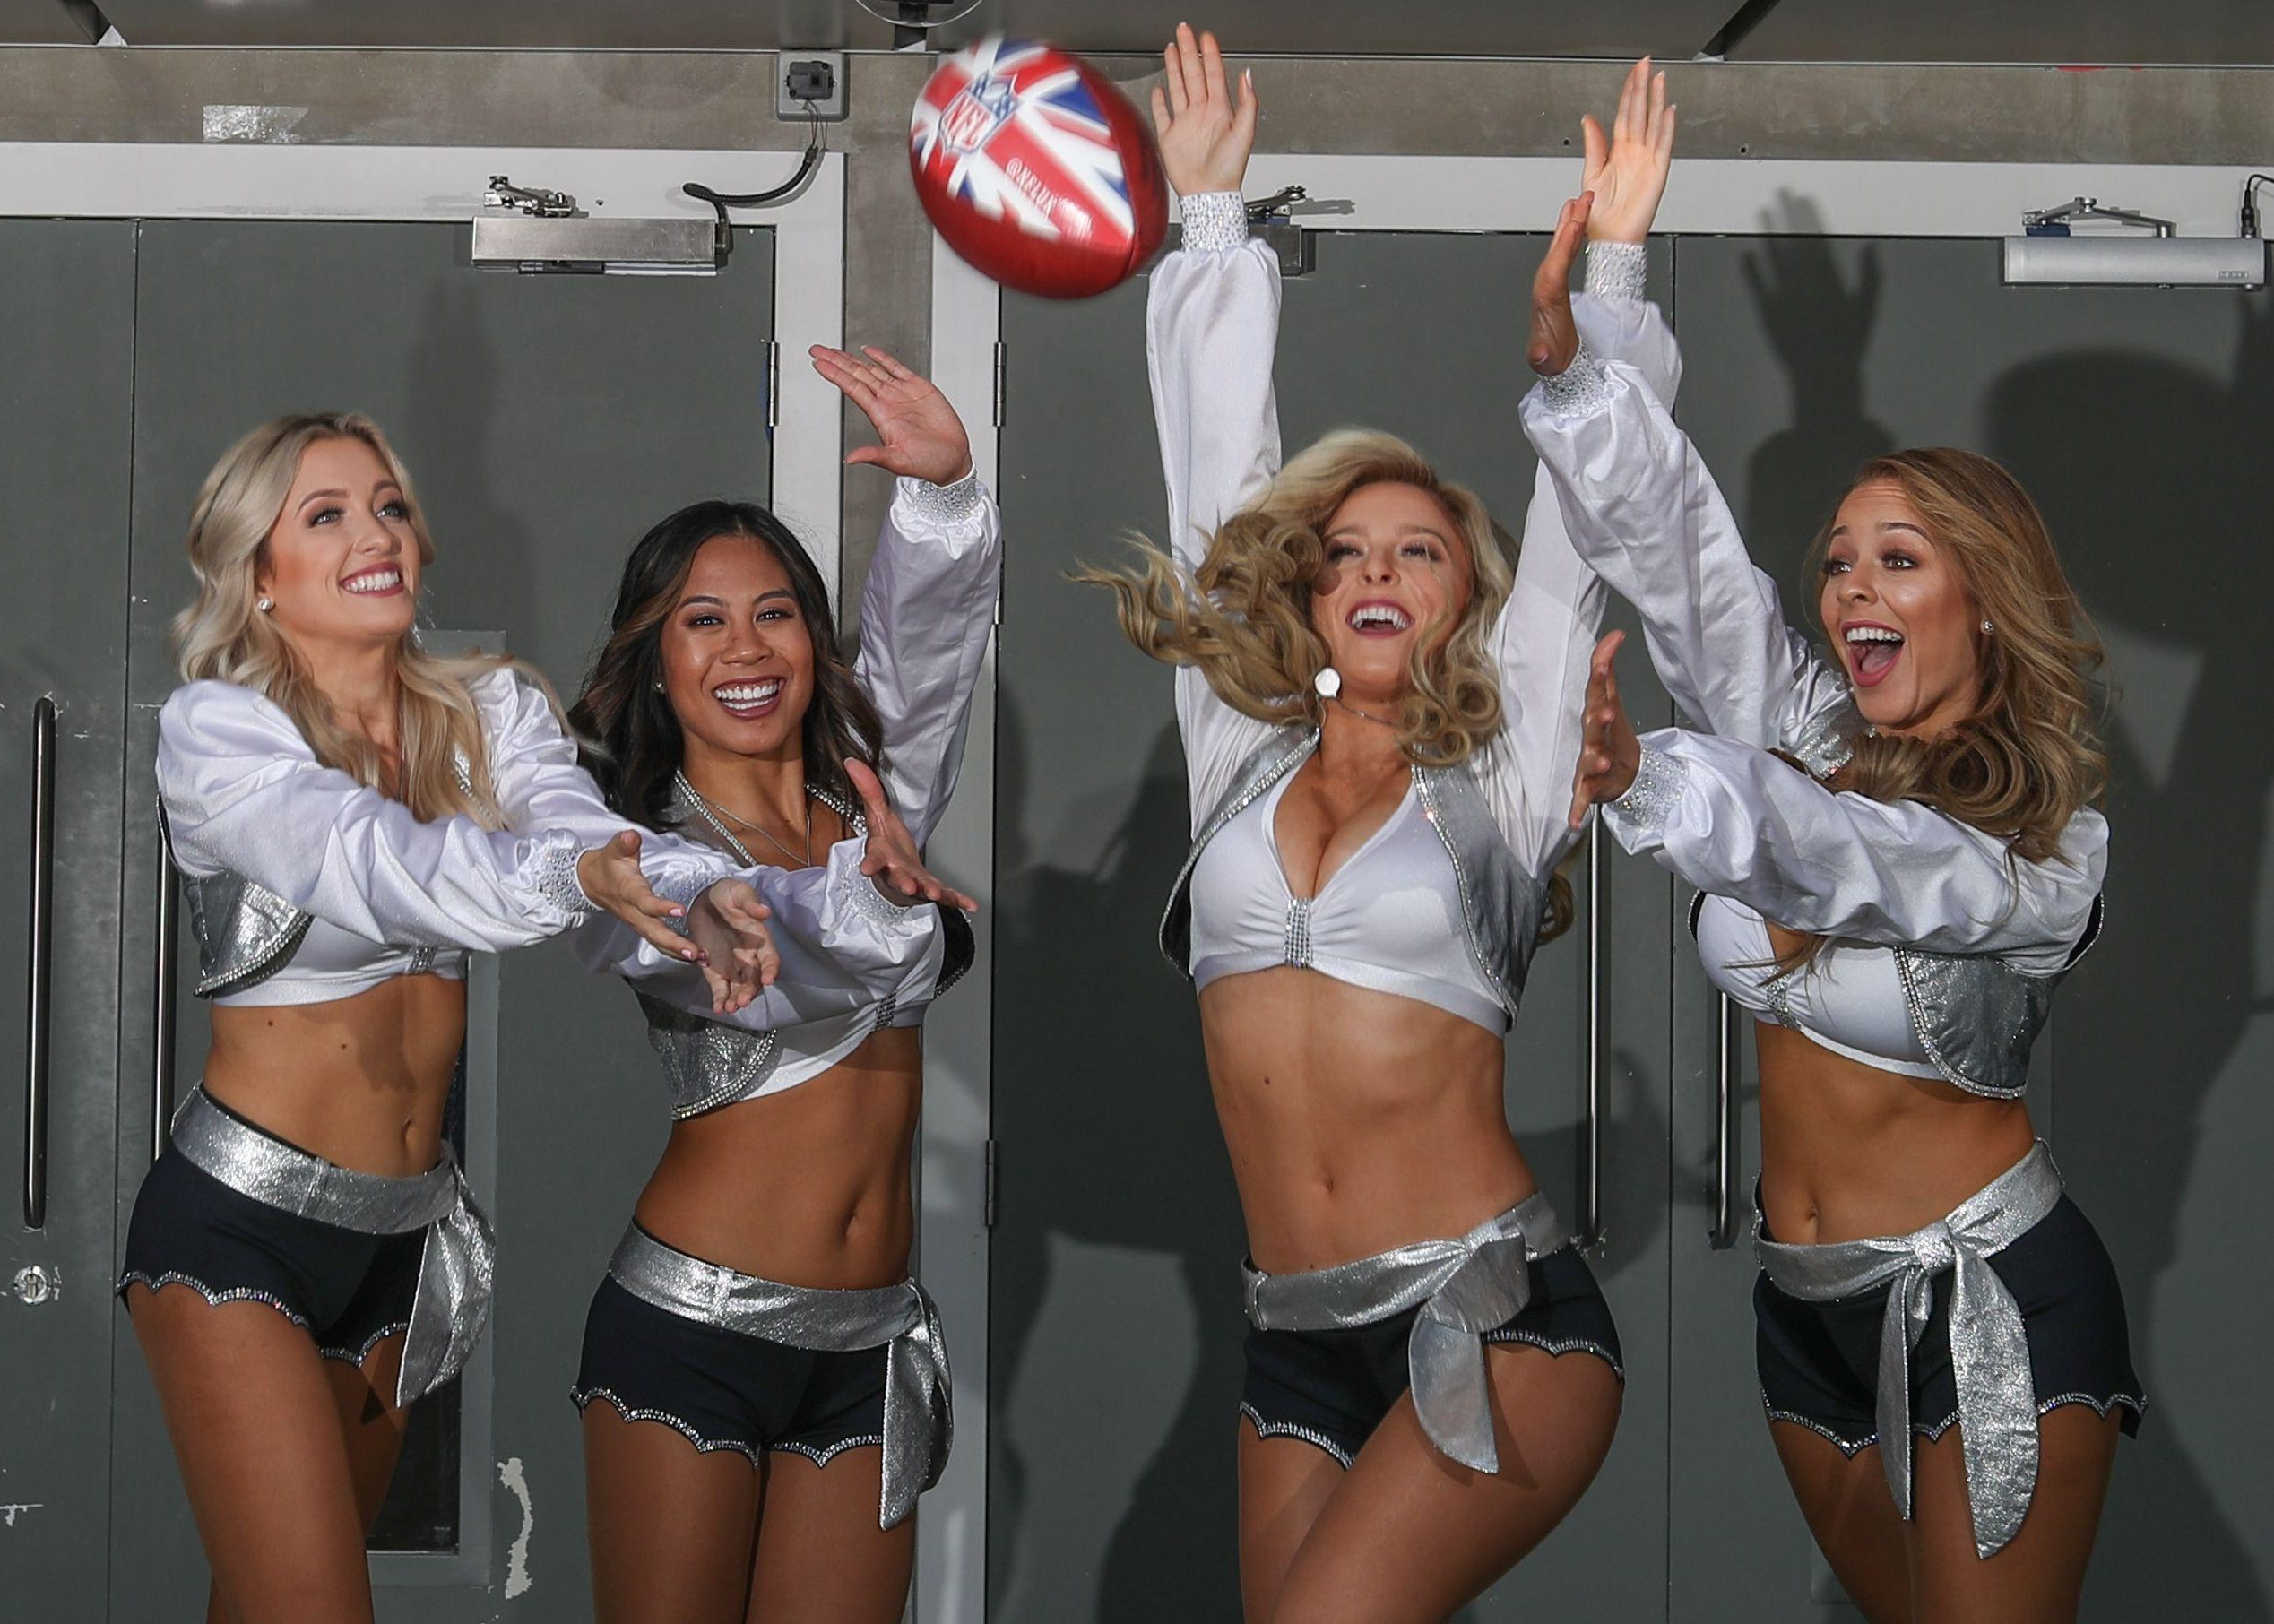 The Oakland Raiders cheerleaders have caught the London bug